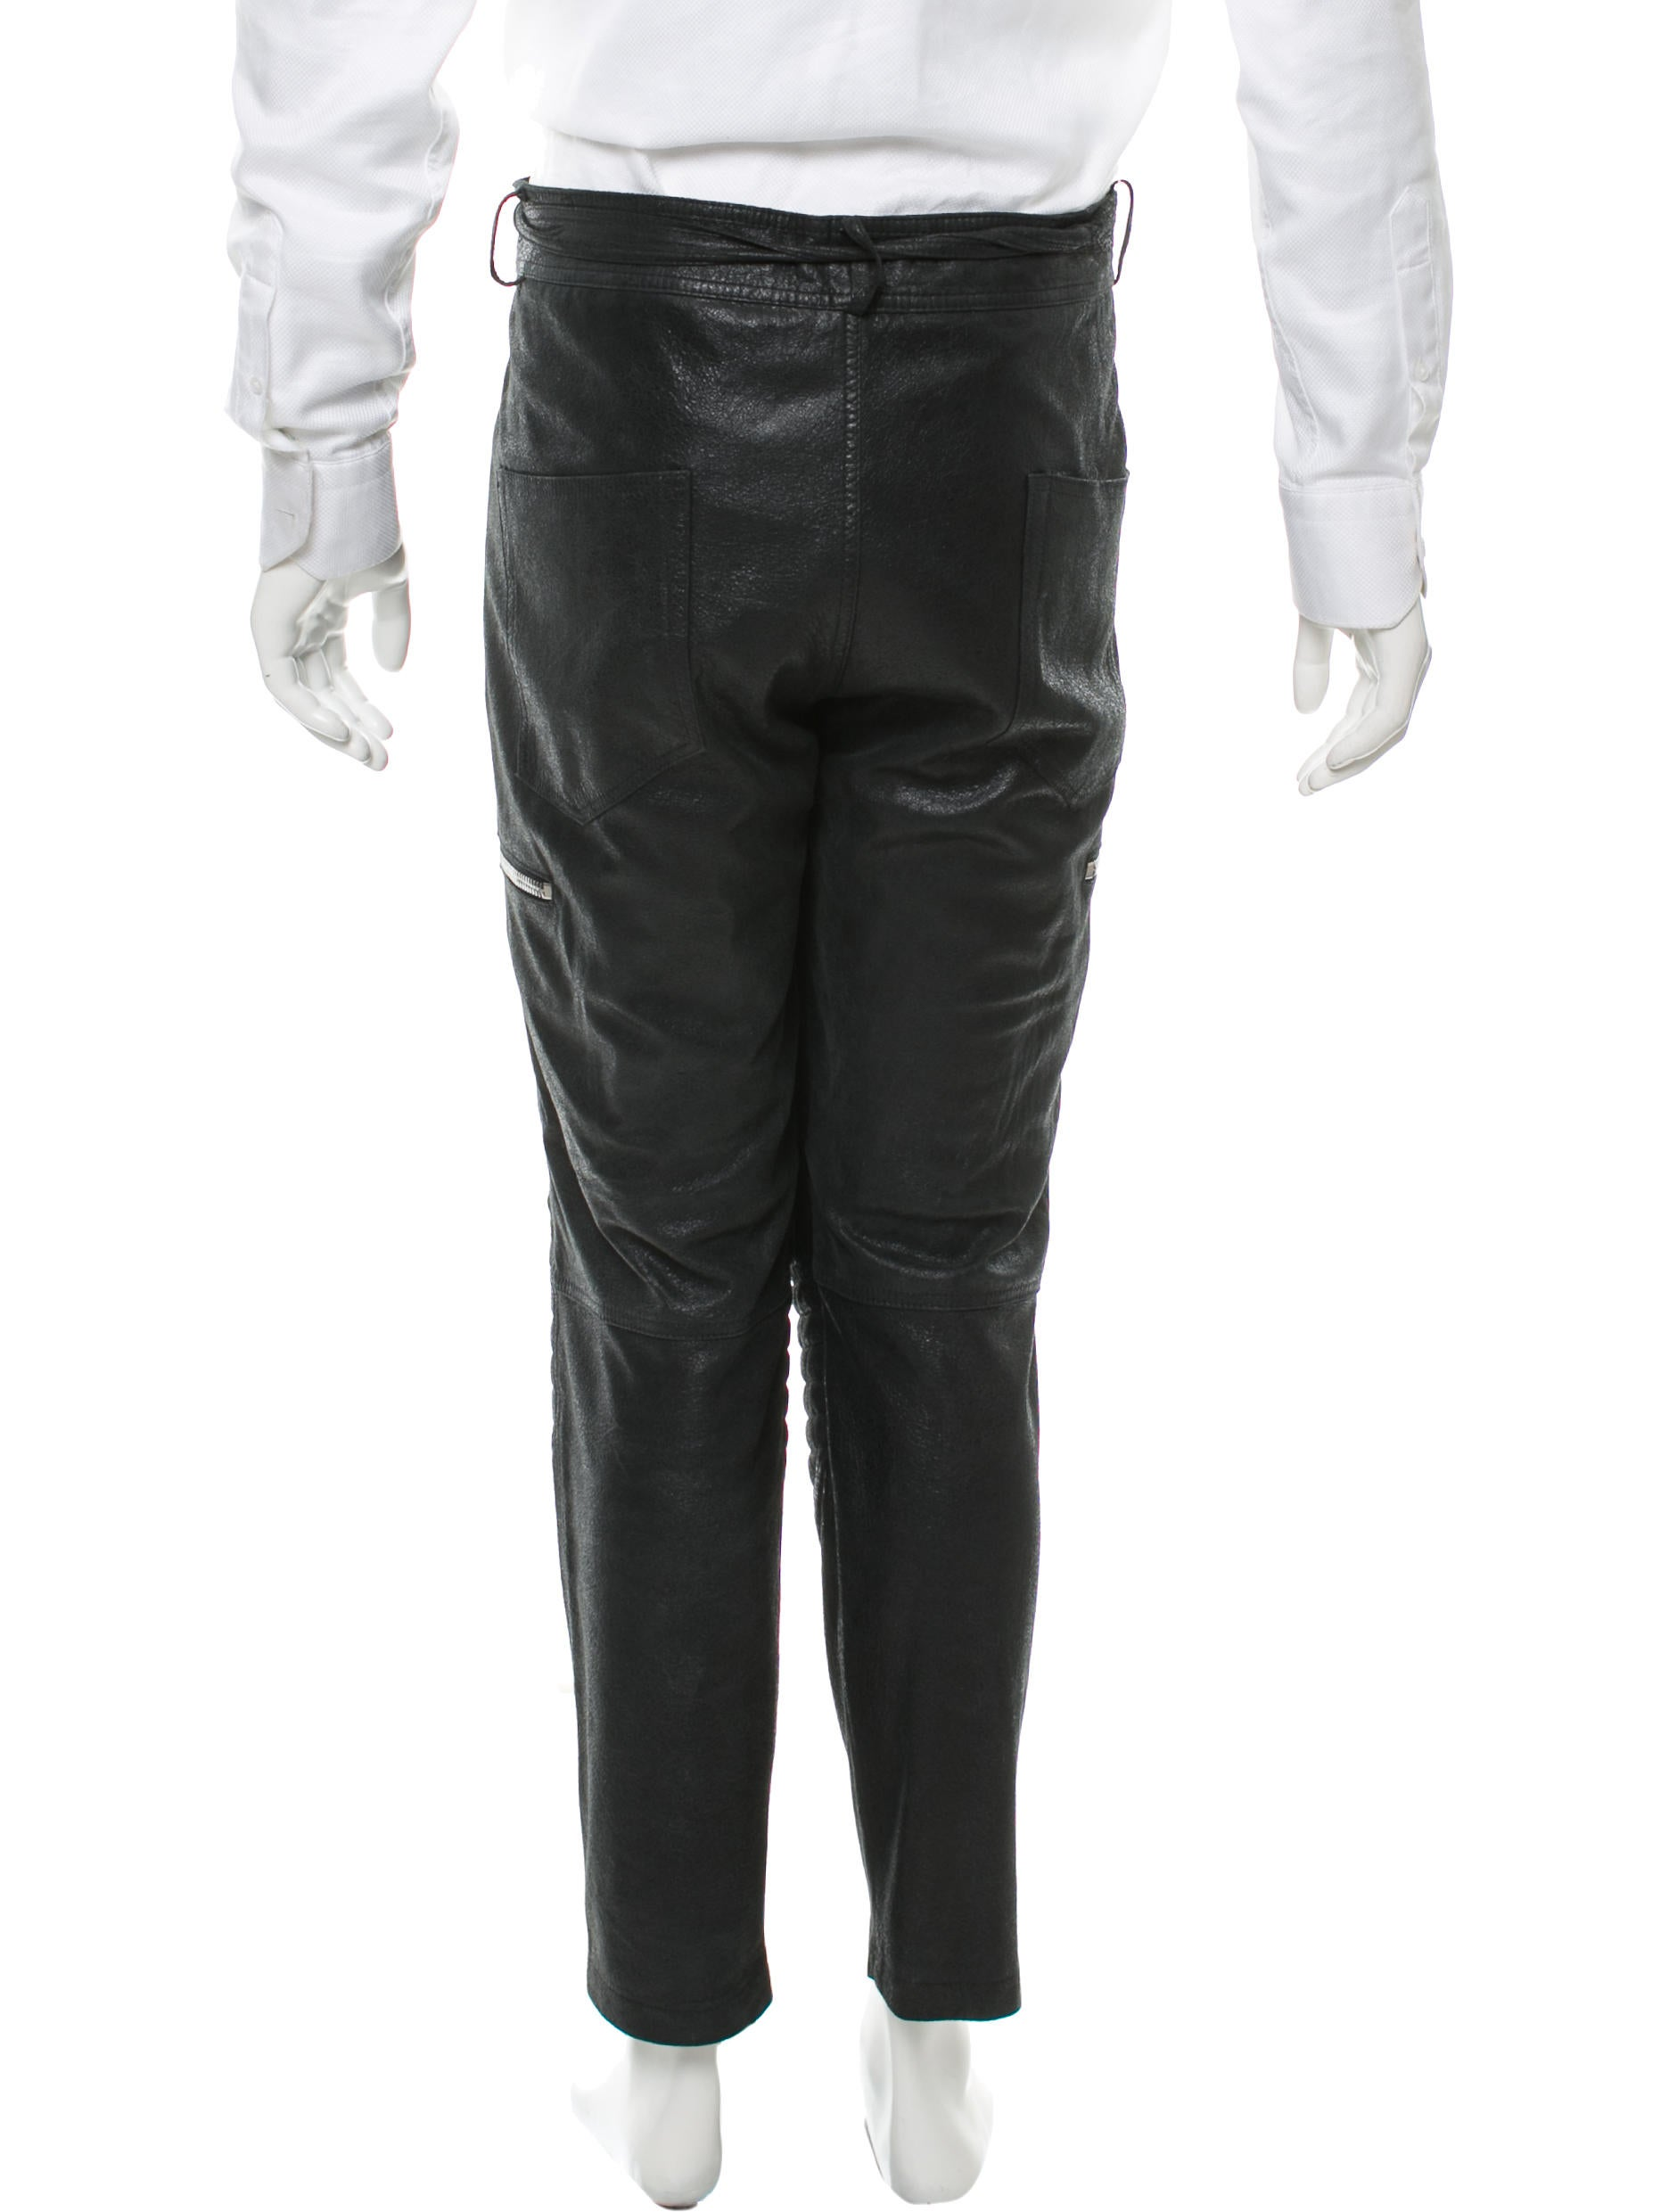 Find balmain leather pants at ShopStyle. Shop the latest collection of balmain leather pants from the most popular stores - all in one place.